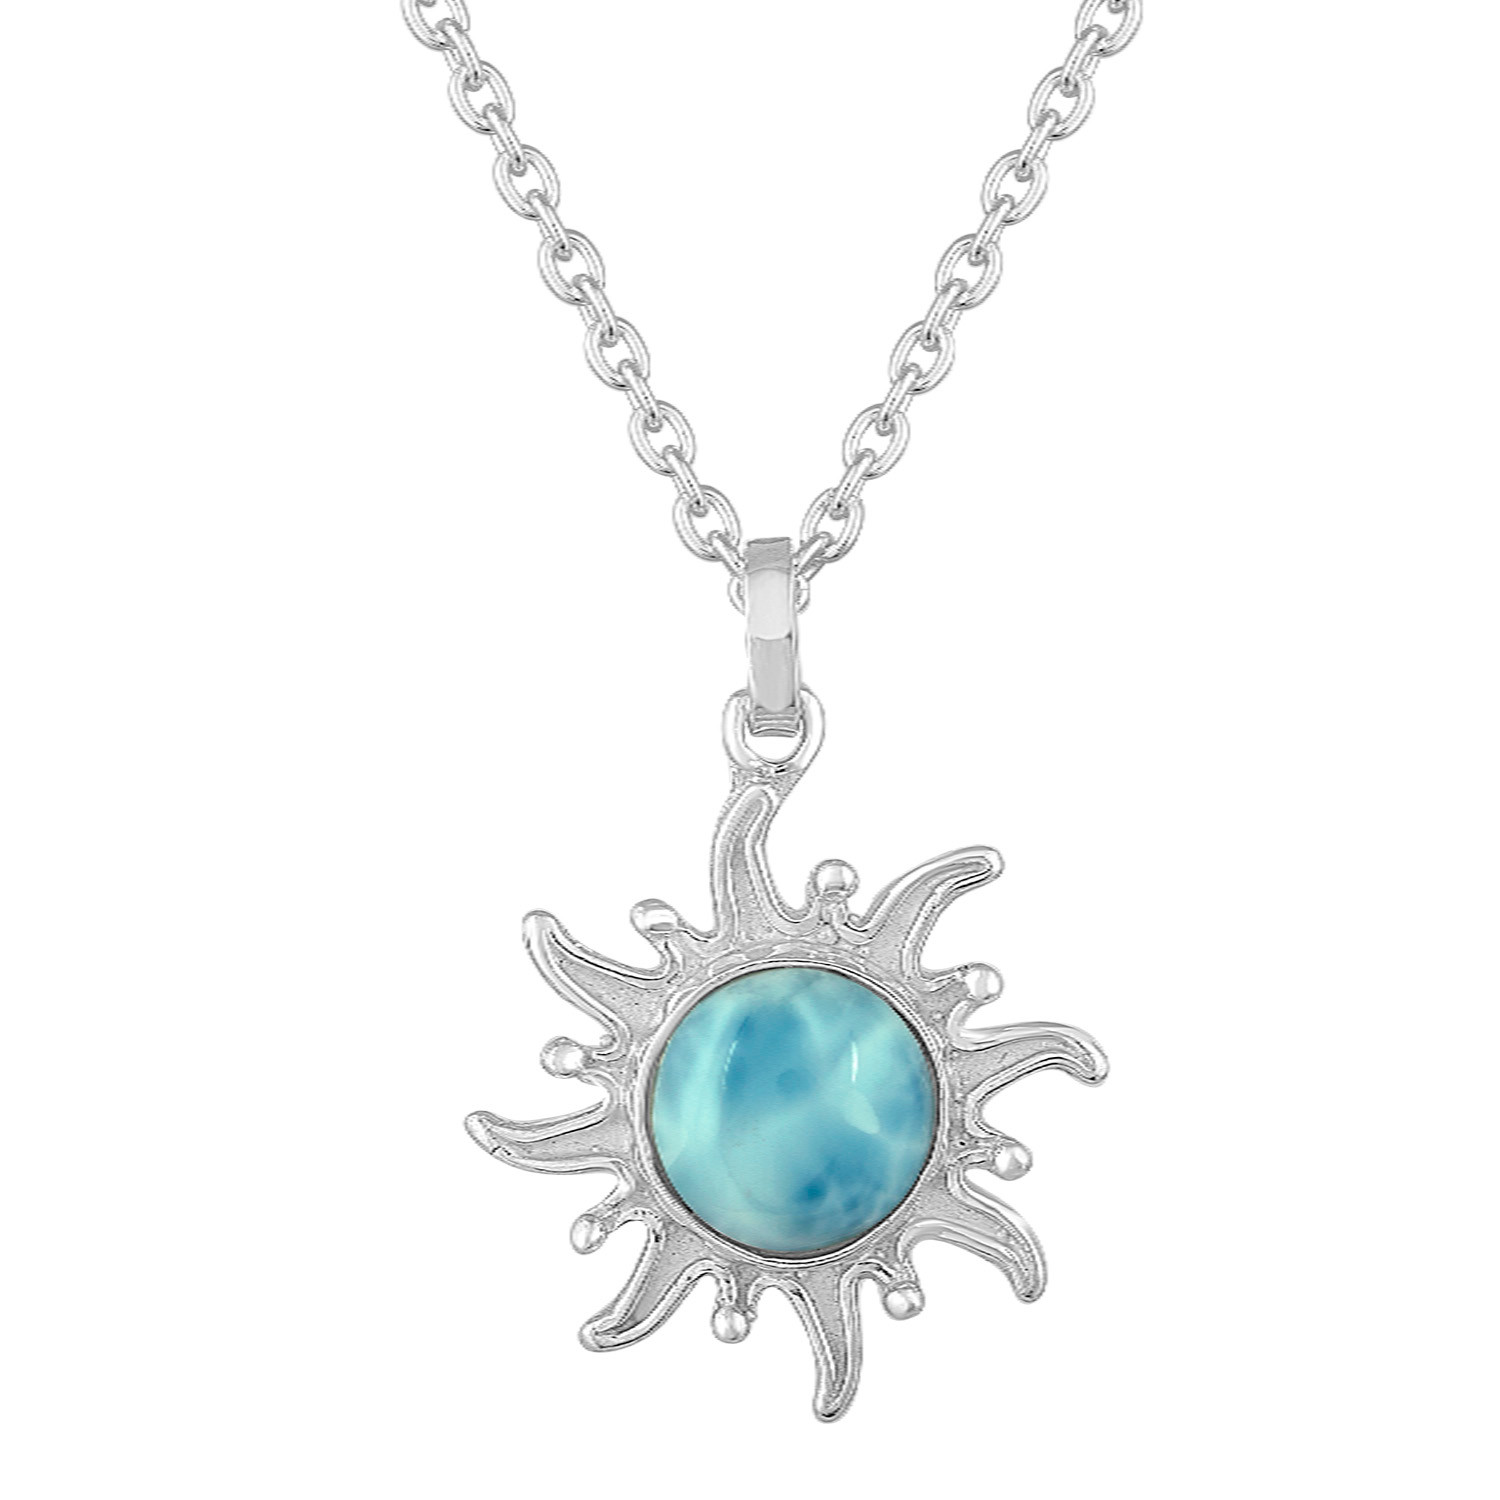 Sterling Silver sunburst with Larimar center